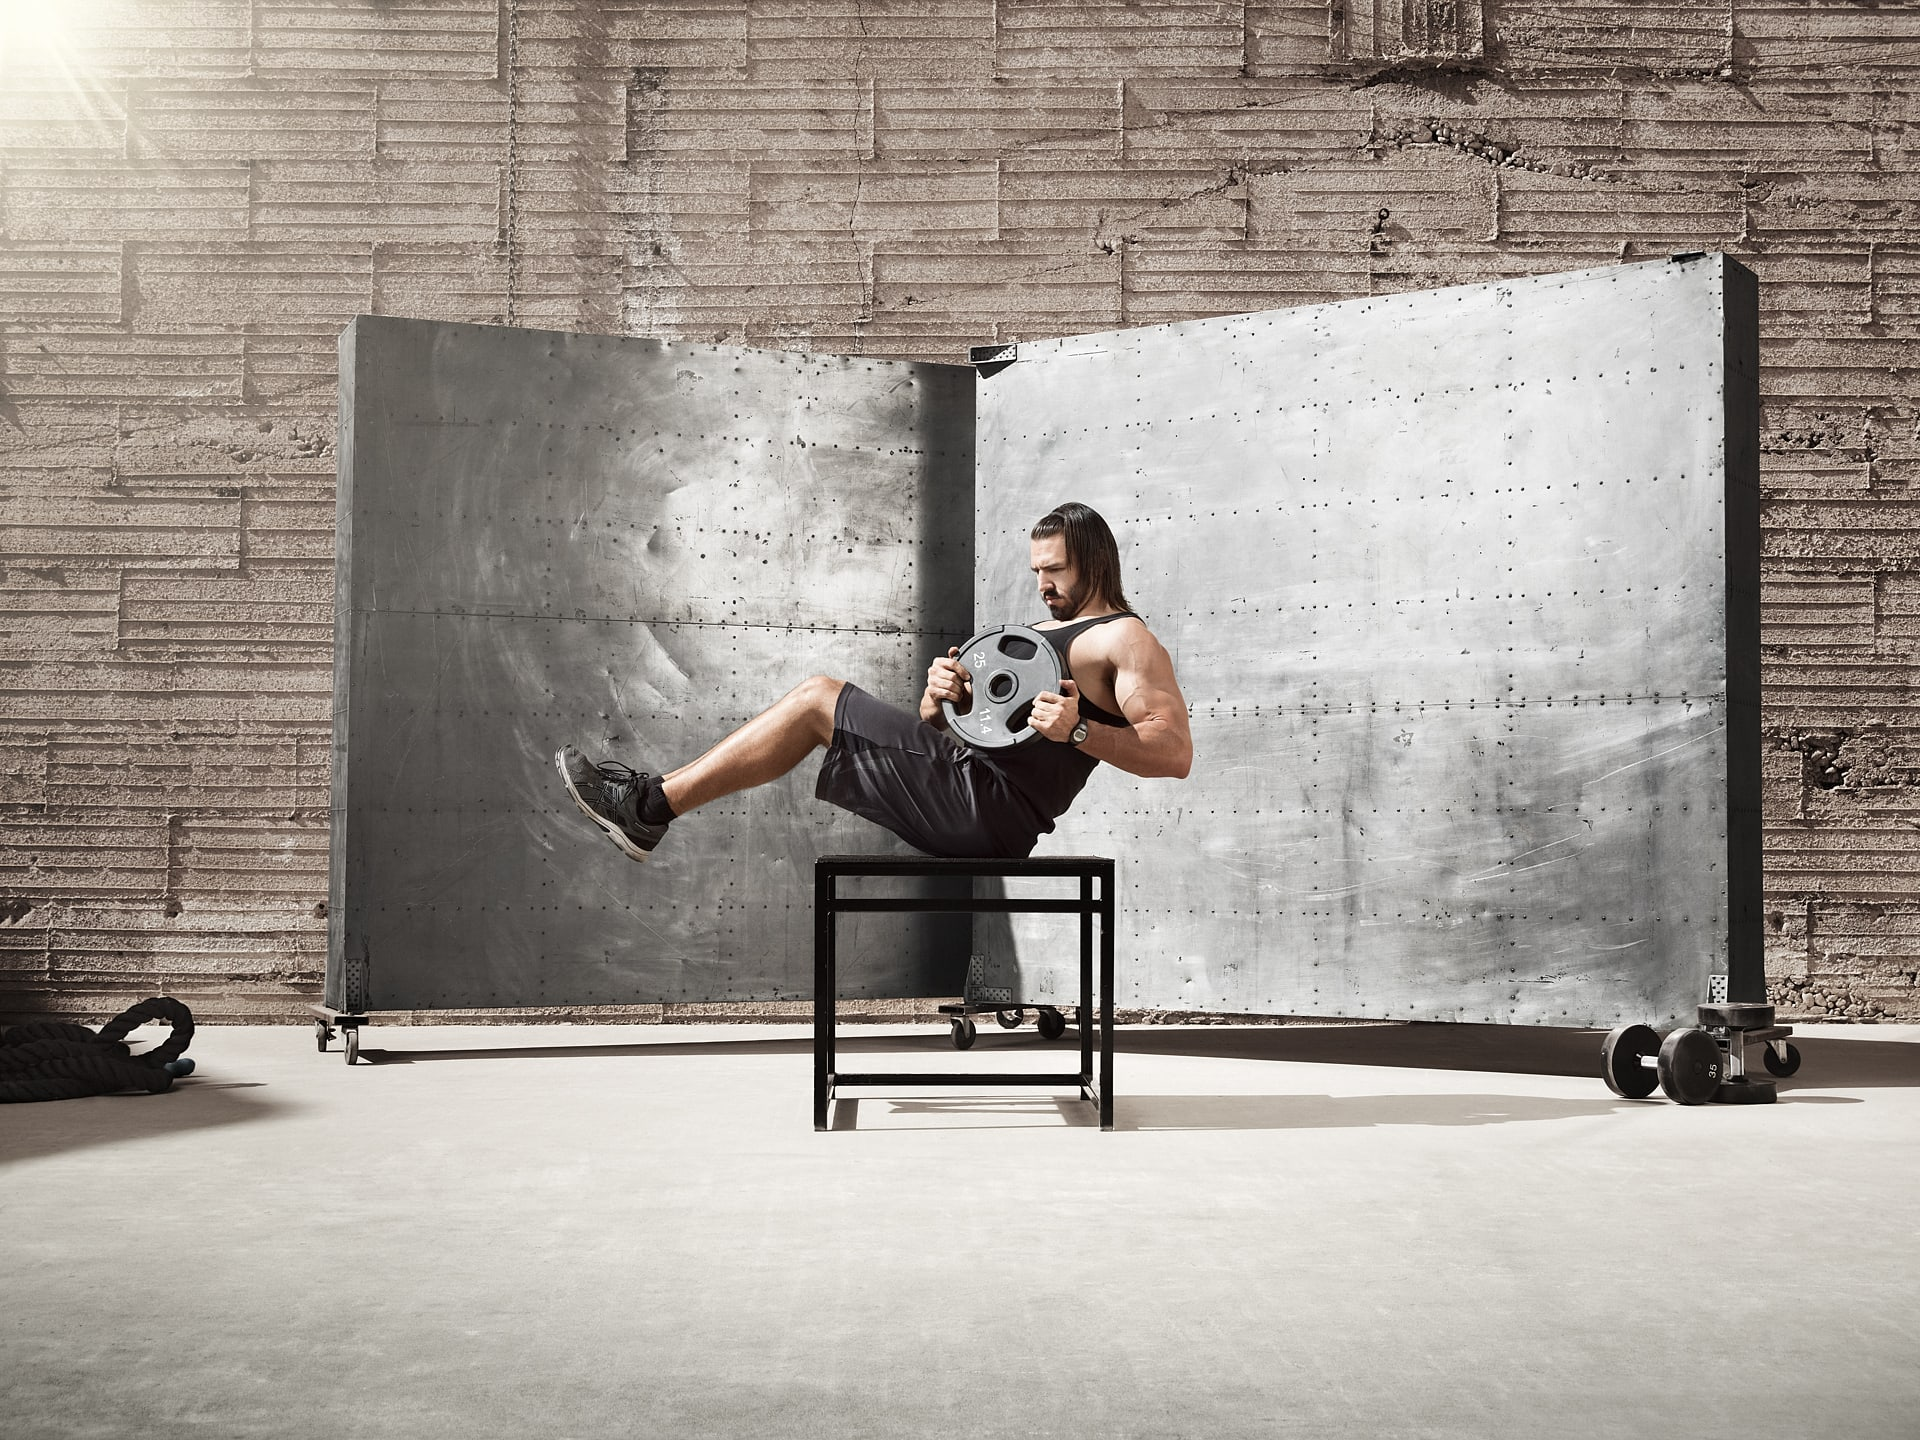 Fitness Advertising Photographer Blair Bunting